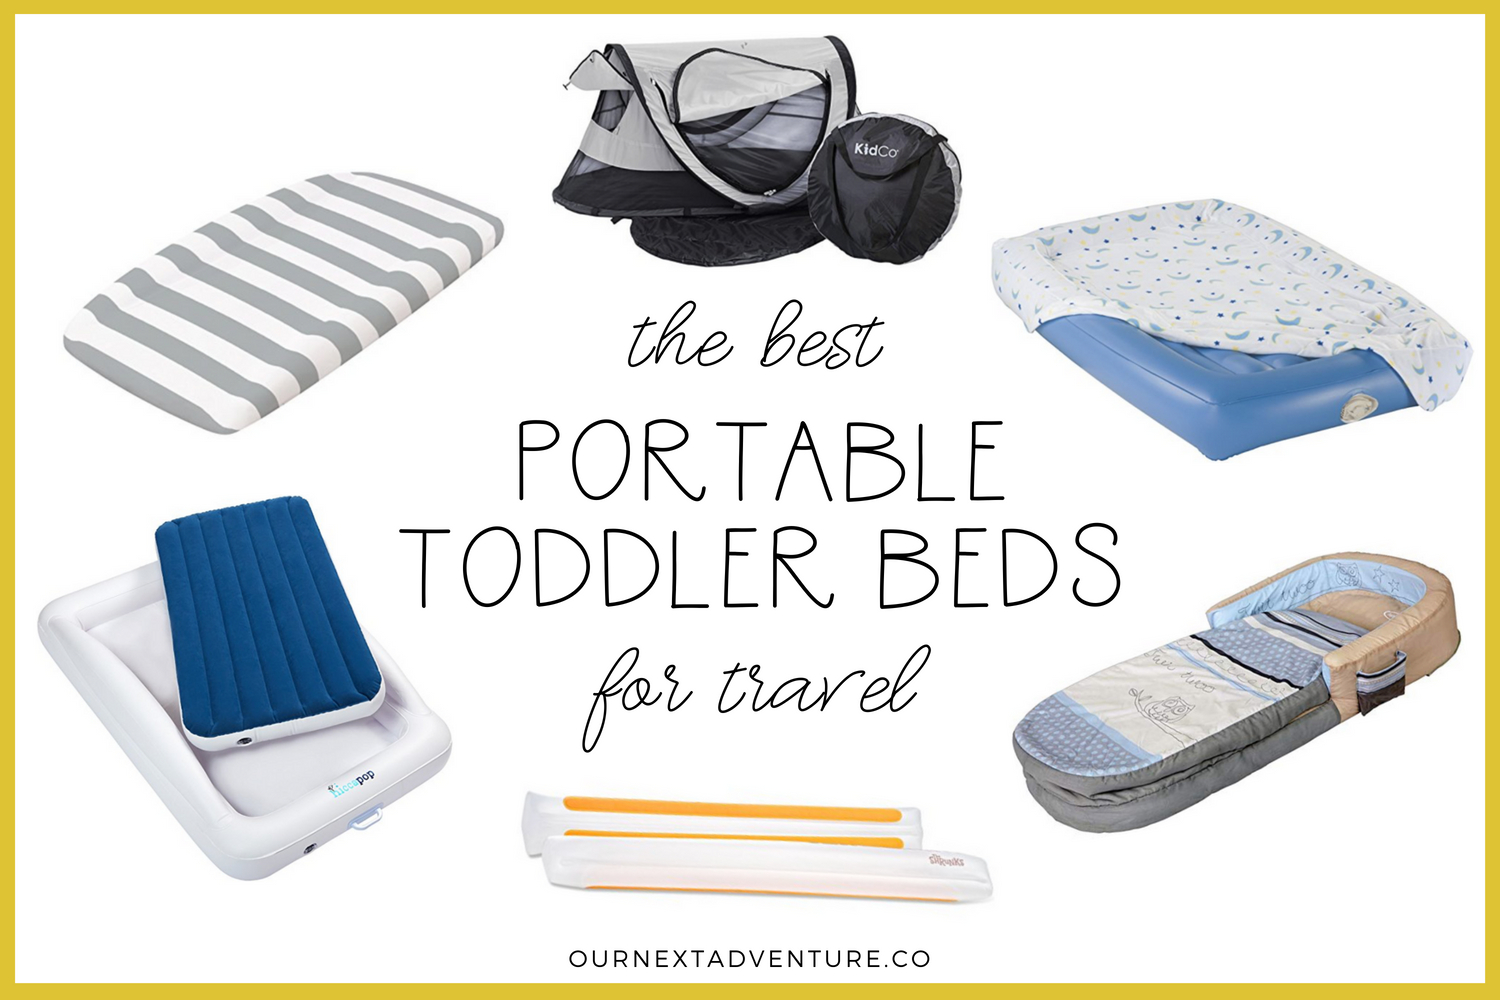 7ac54642c97 The Best Portable Toddler Beds for Travel